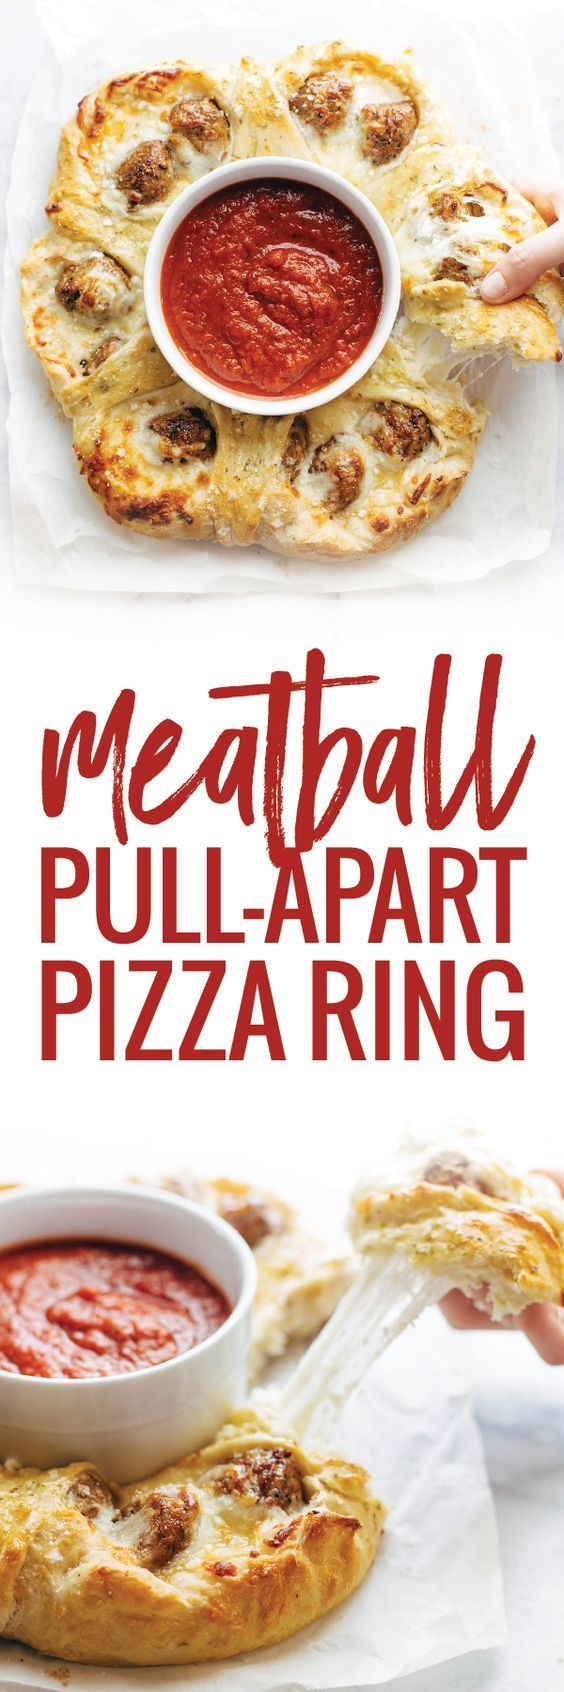 Meatball Pull-Apart Pizza Ring Cheesy Meatball Pull-Apart Pizza Ring! 5 ingredients - SO YUMMY and so fun for parties! | Lists of political parties  Political parties are the association of voters with broad, common interests who want to influence or control decision-making in government by electing the parties candidates to public office.   More general issues are elaborated on ...